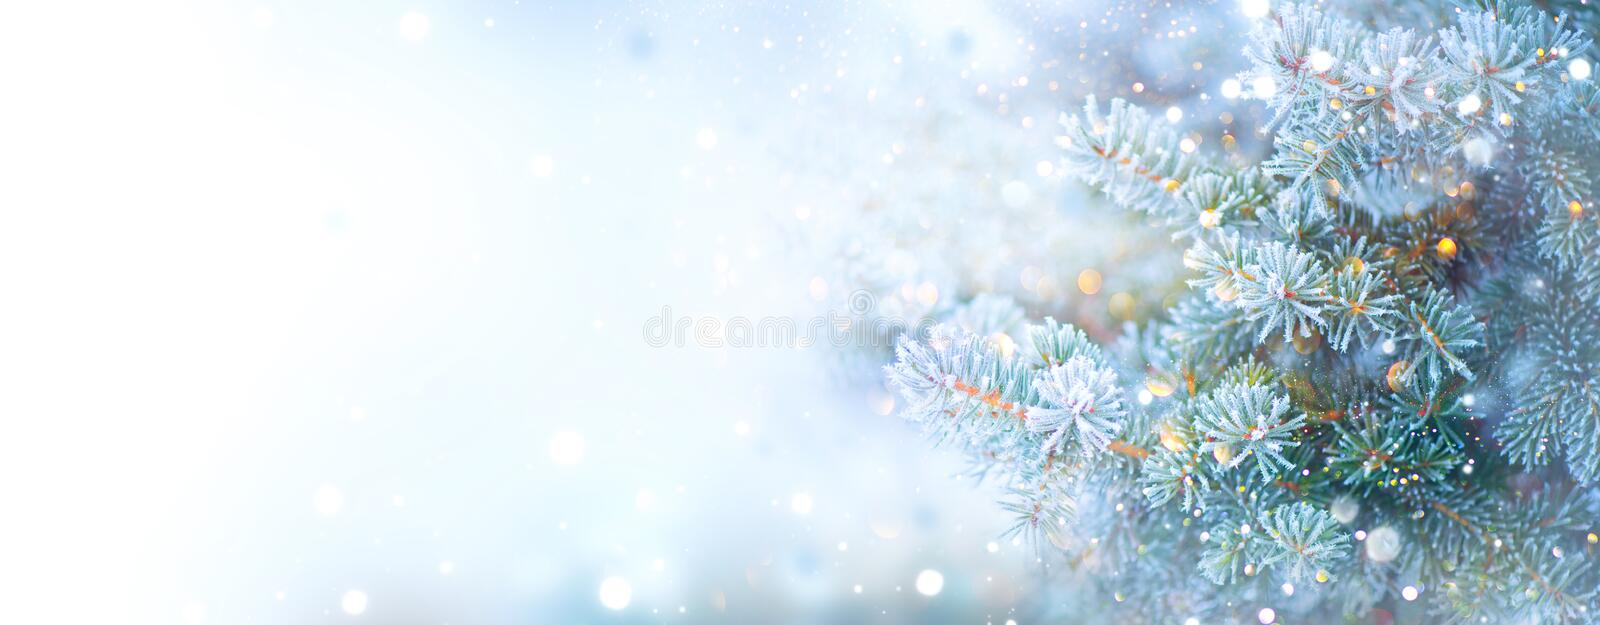 Christmas holiday tree. Border snow background. Snowflakes. Blue spruce, beautiful Christmas and New Year Xmas tree royalty free stock images